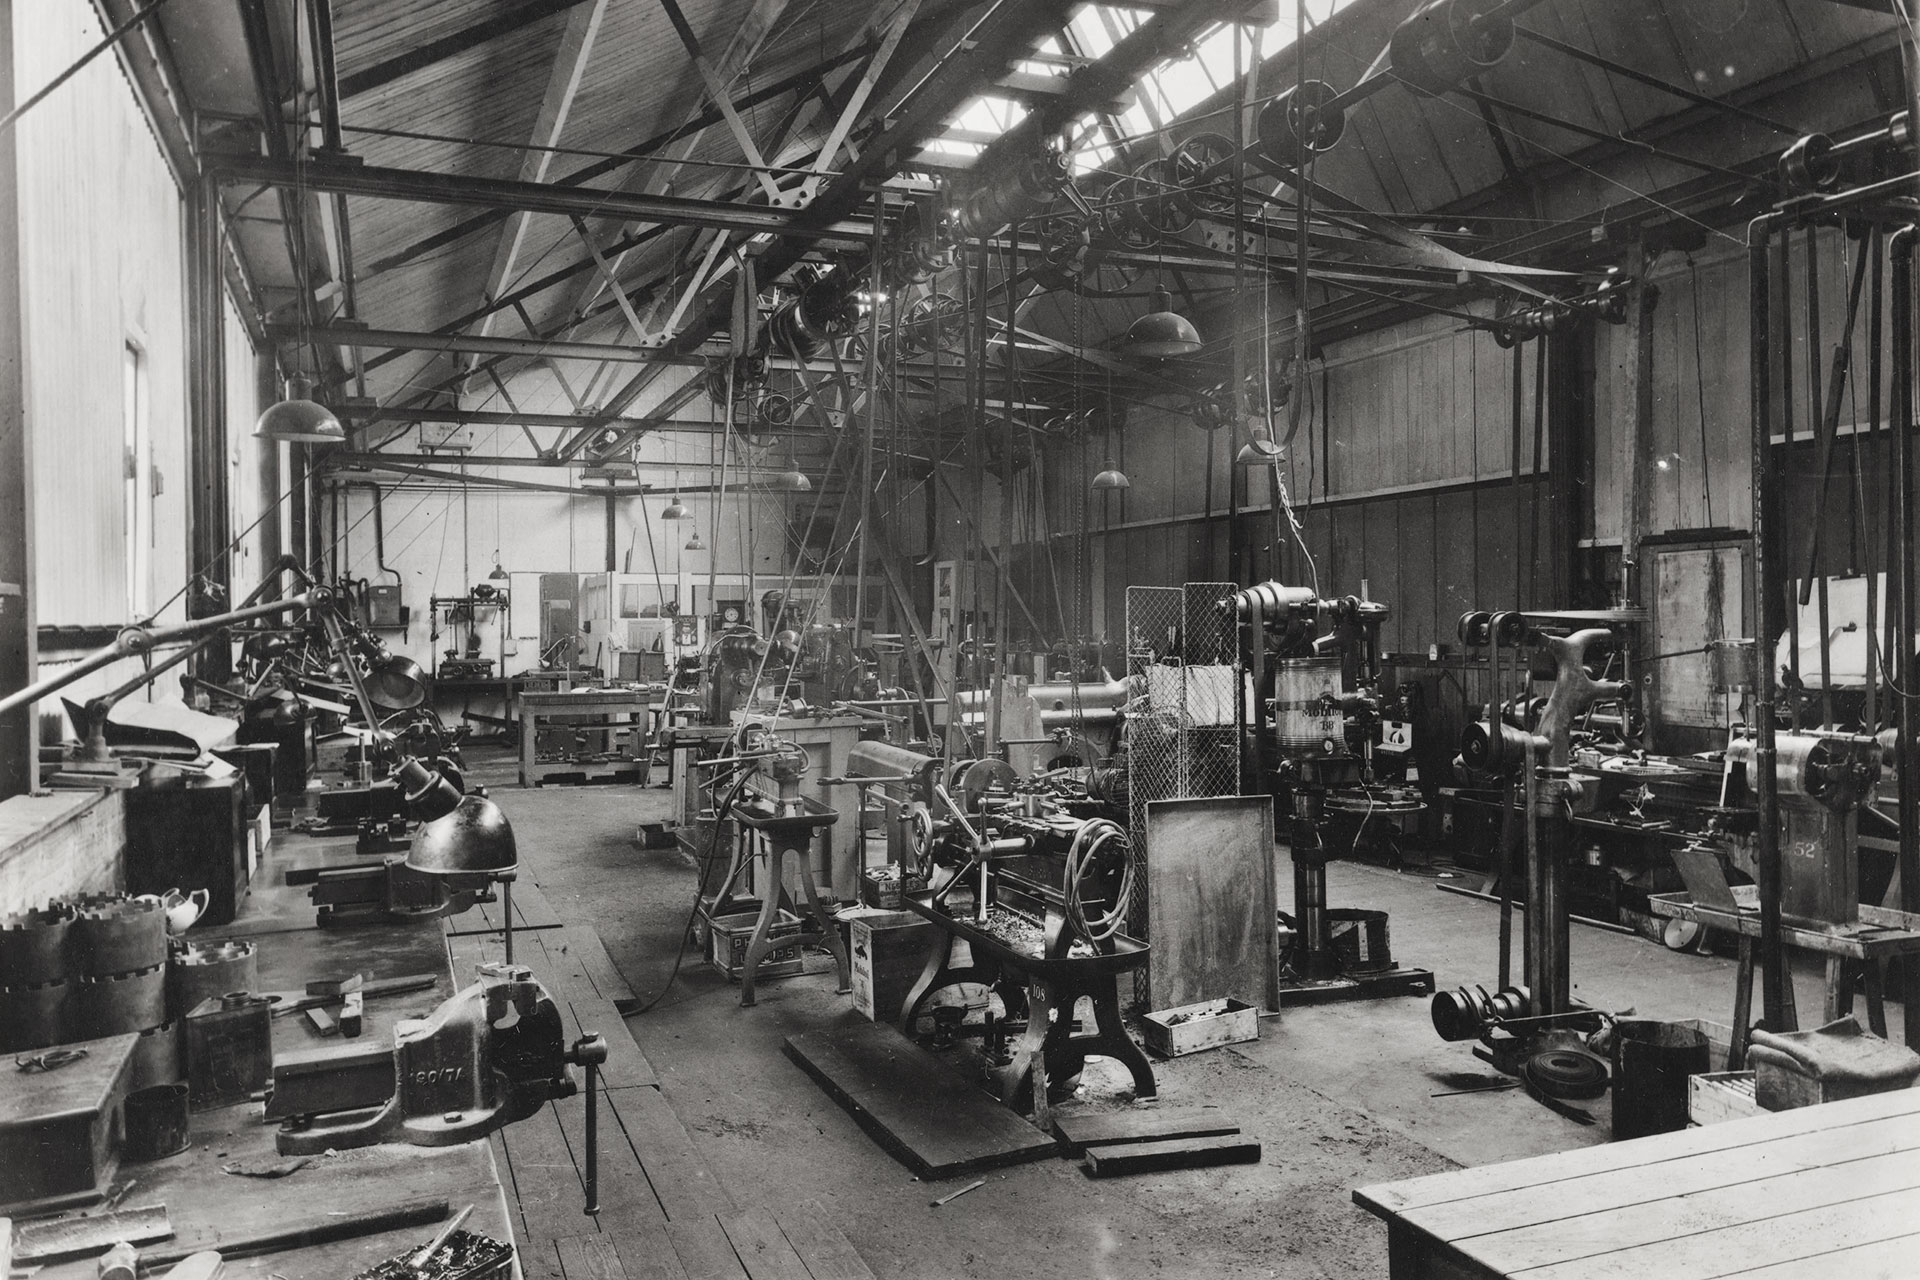 Willcocks Engineering Shop in the 1920s